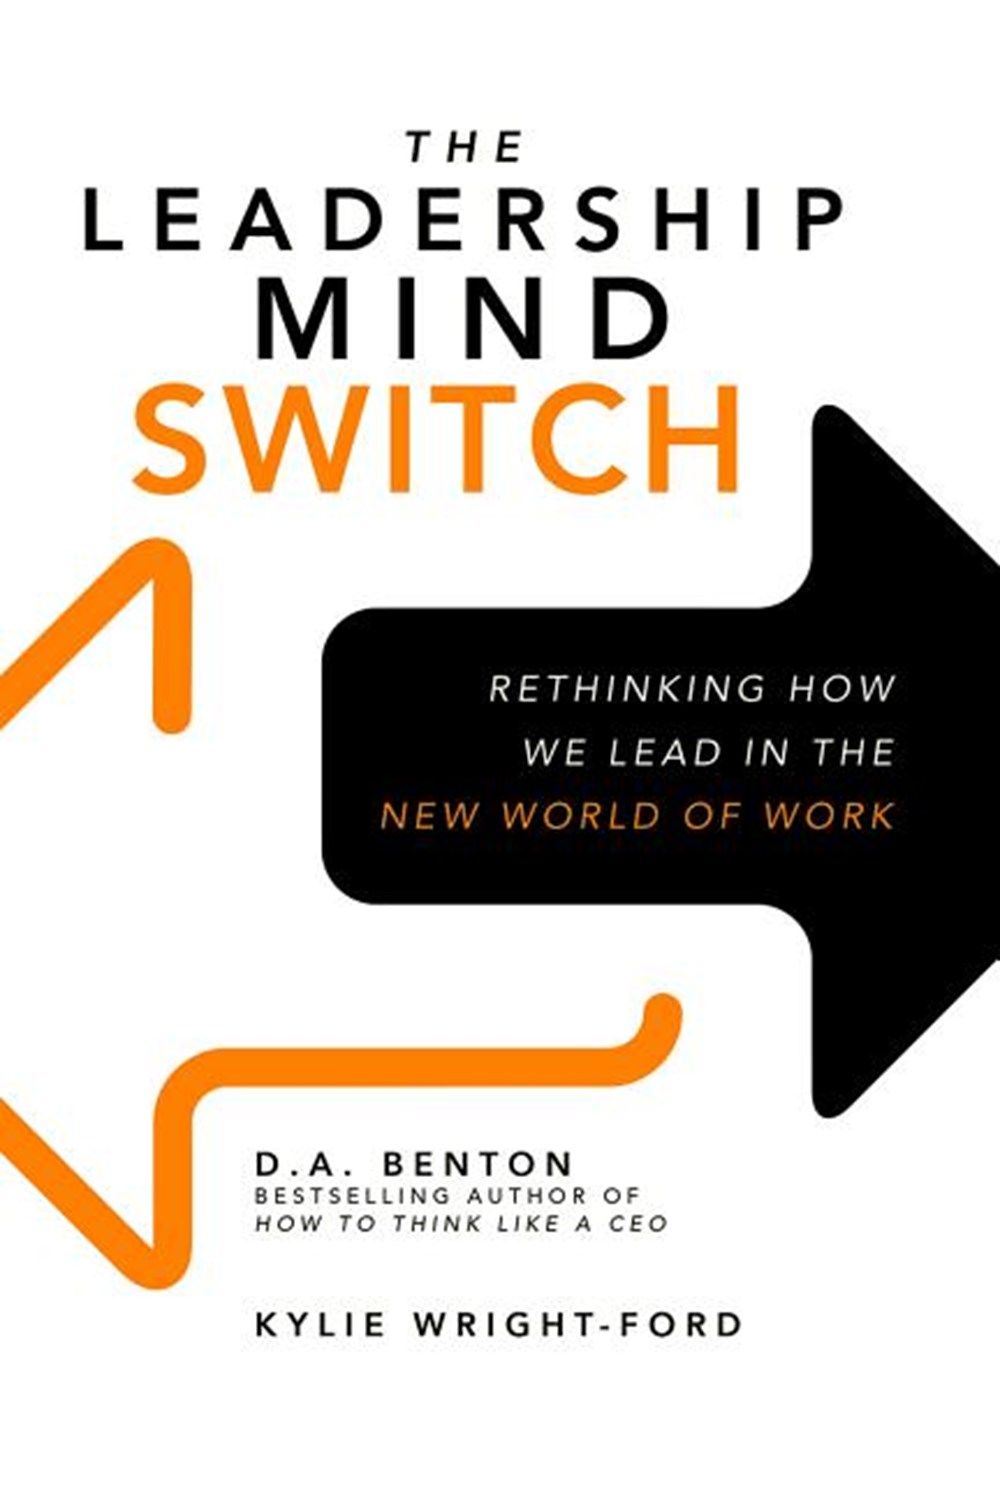 Leadership Mind Switch Rethinking How We Lead in the New World of Work